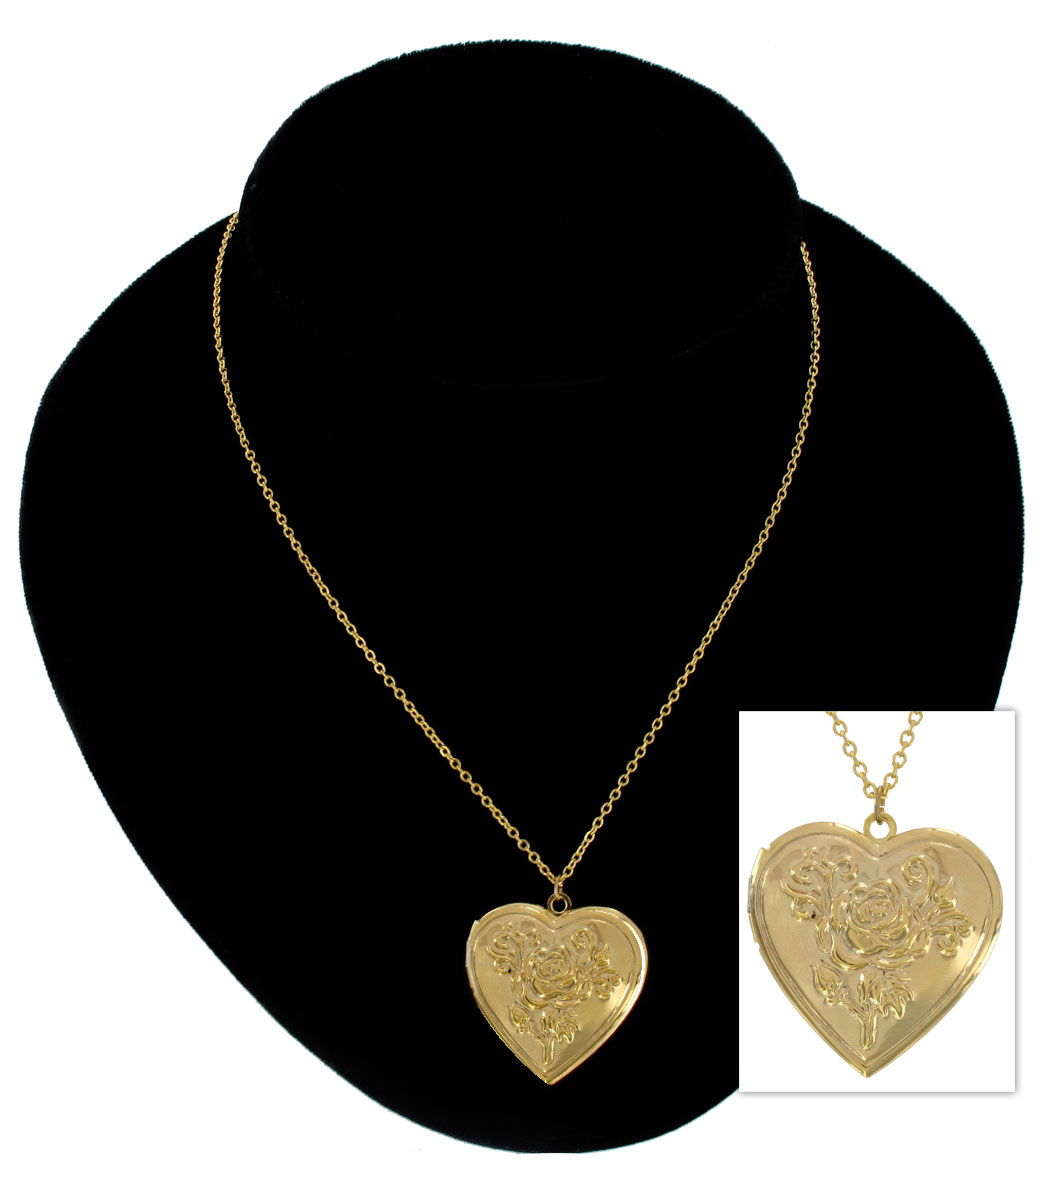 KY & Co USA Made Pendant Locket Necklace Gold Tone Rose Heart Photo Metal